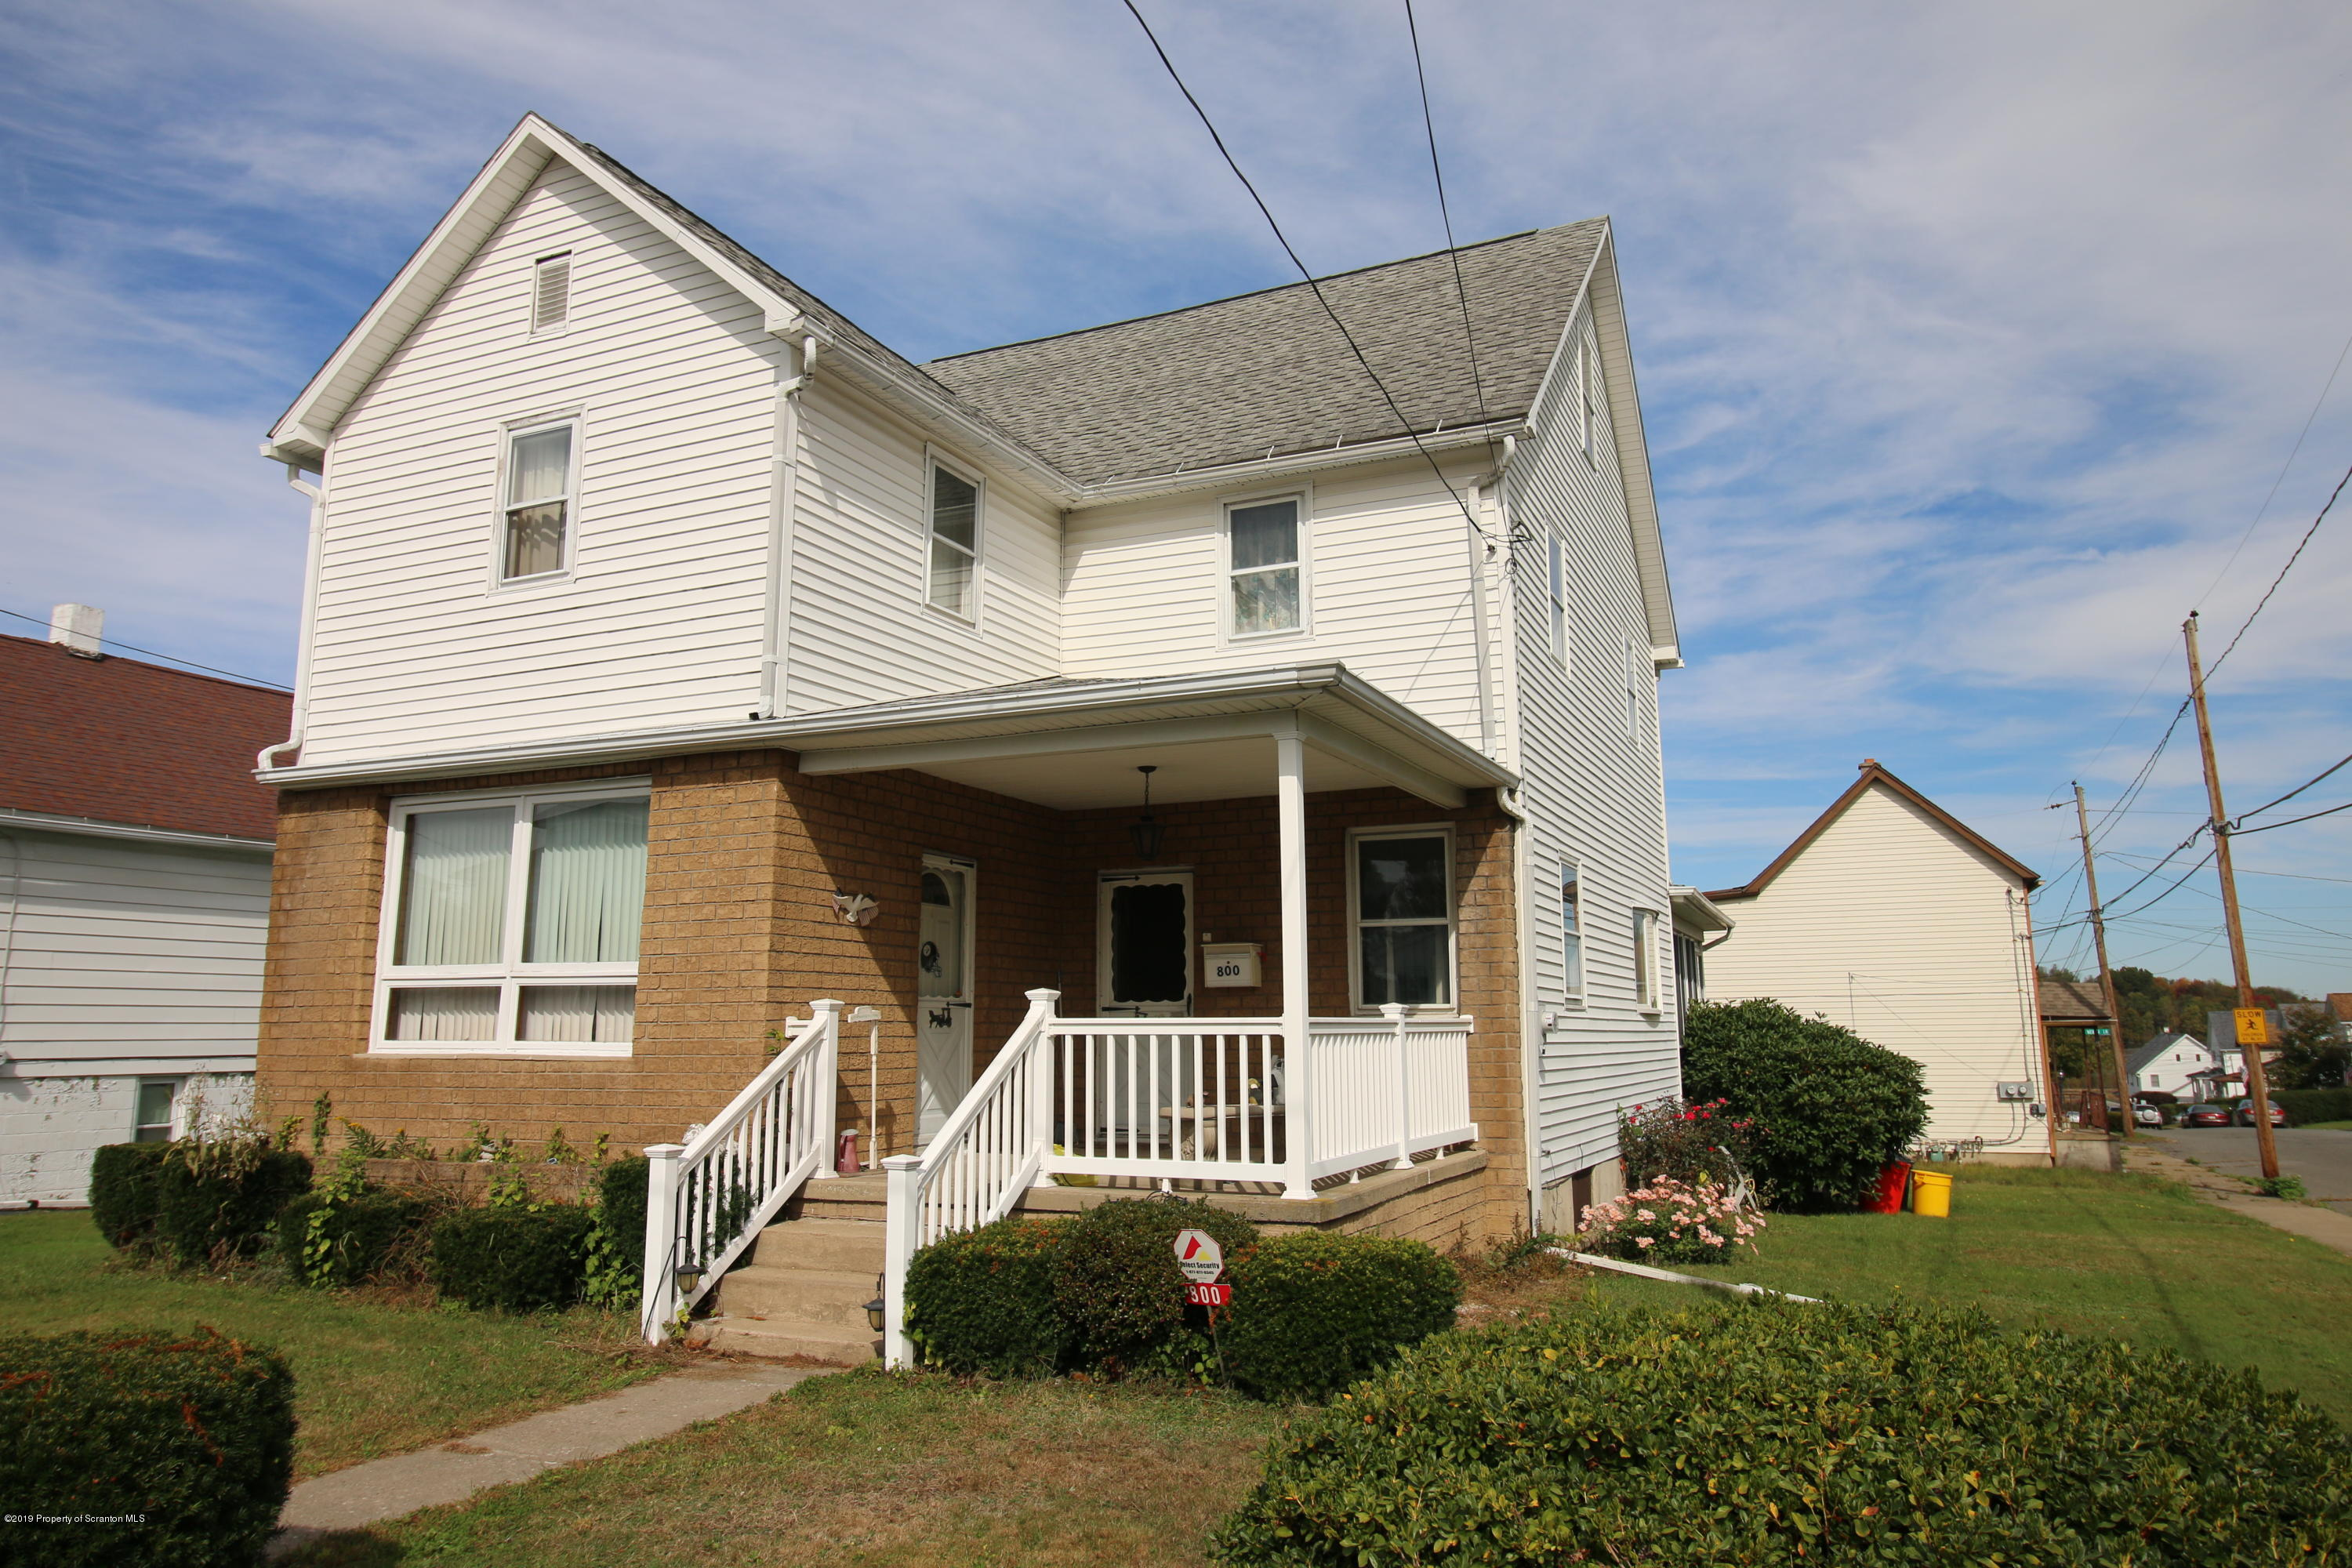 800 Grove, Taylor, Pennsylvania 18517, 5 Bedrooms Bedrooms, 7 Rooms Rooms,1 BathroomBathrooms,Single Family,For Sale,Grove,19-5395